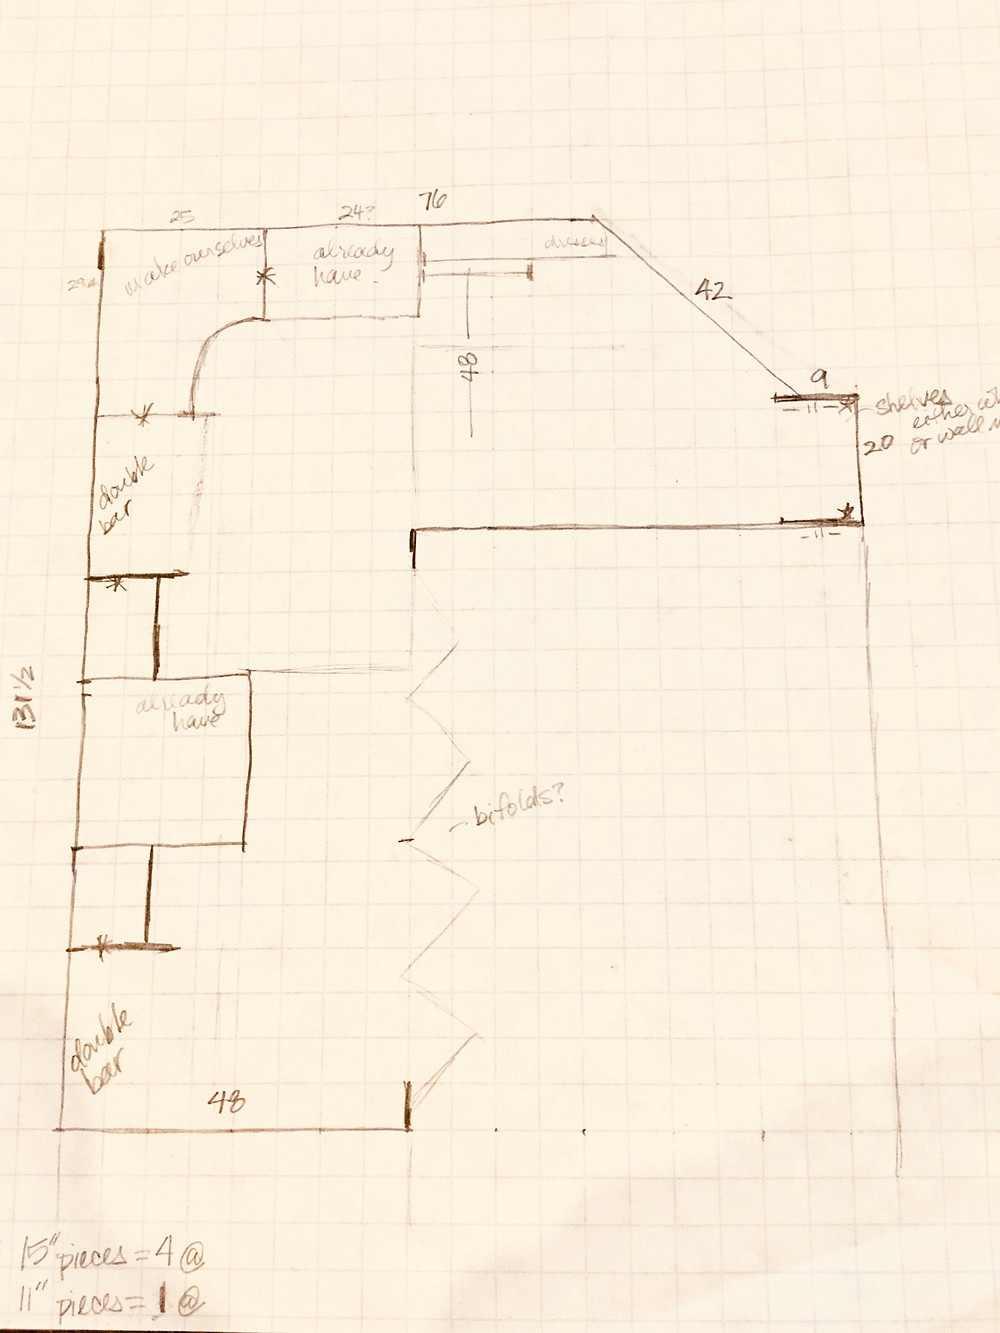 Drawn plans for closet